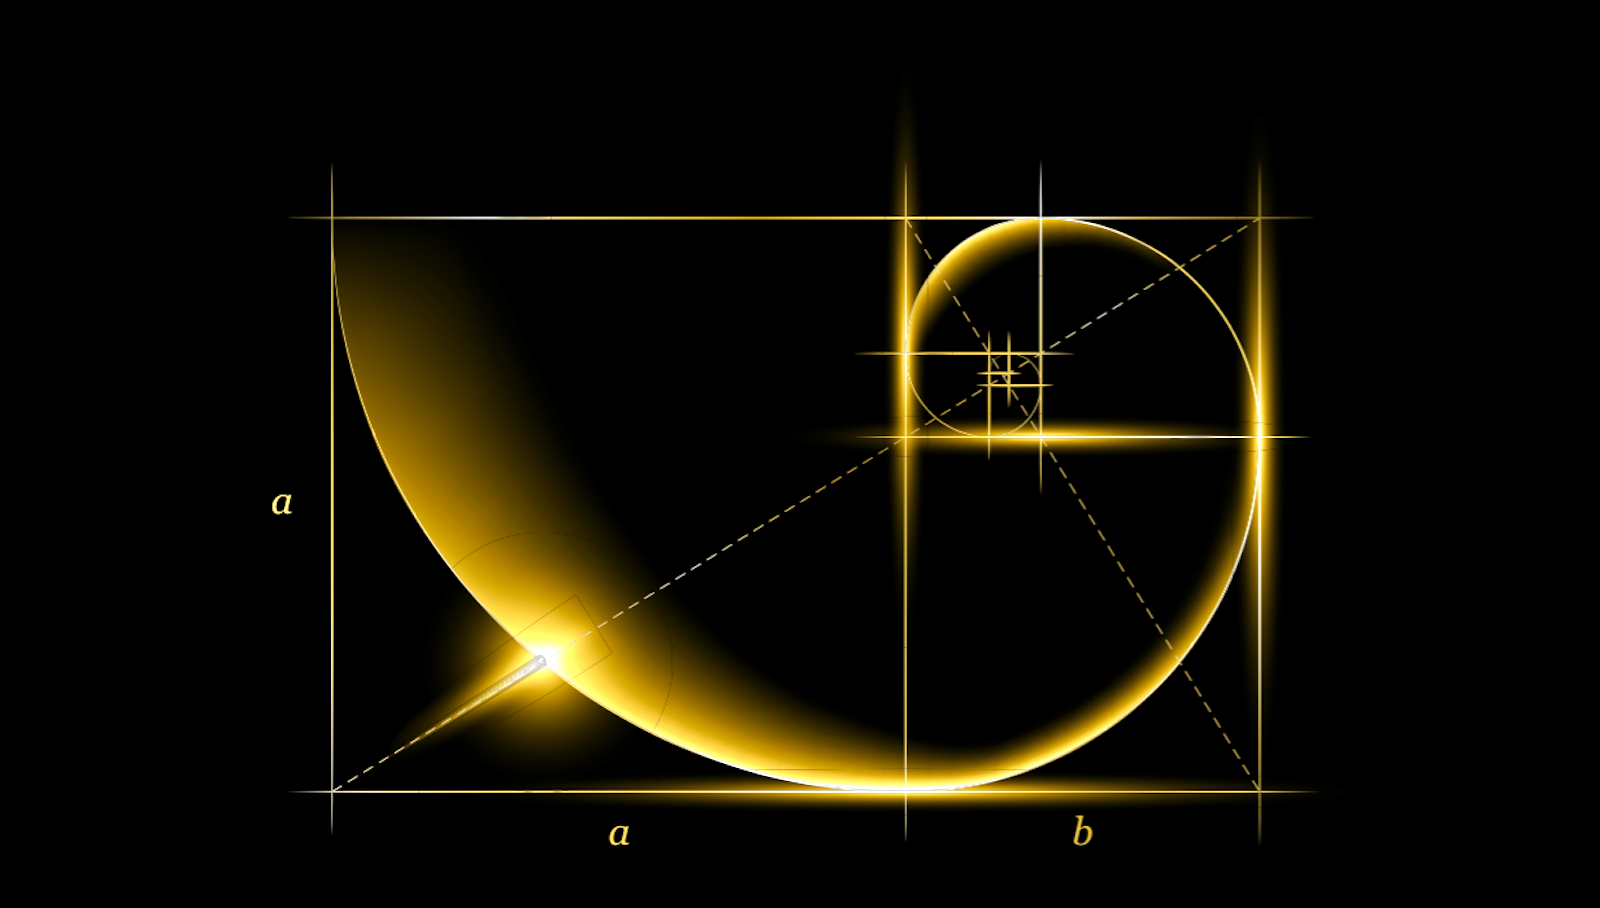 golden ratio term paper White paper golden ratio day - phi day please click here for the fib/phi link page instructions for downloading 10,000,000 digits of the golden ratio here are 10 files, each containing 1,000,000 digits, plus a bonus file containing an additional 818600 sorry i can not host all 15 million at this time.